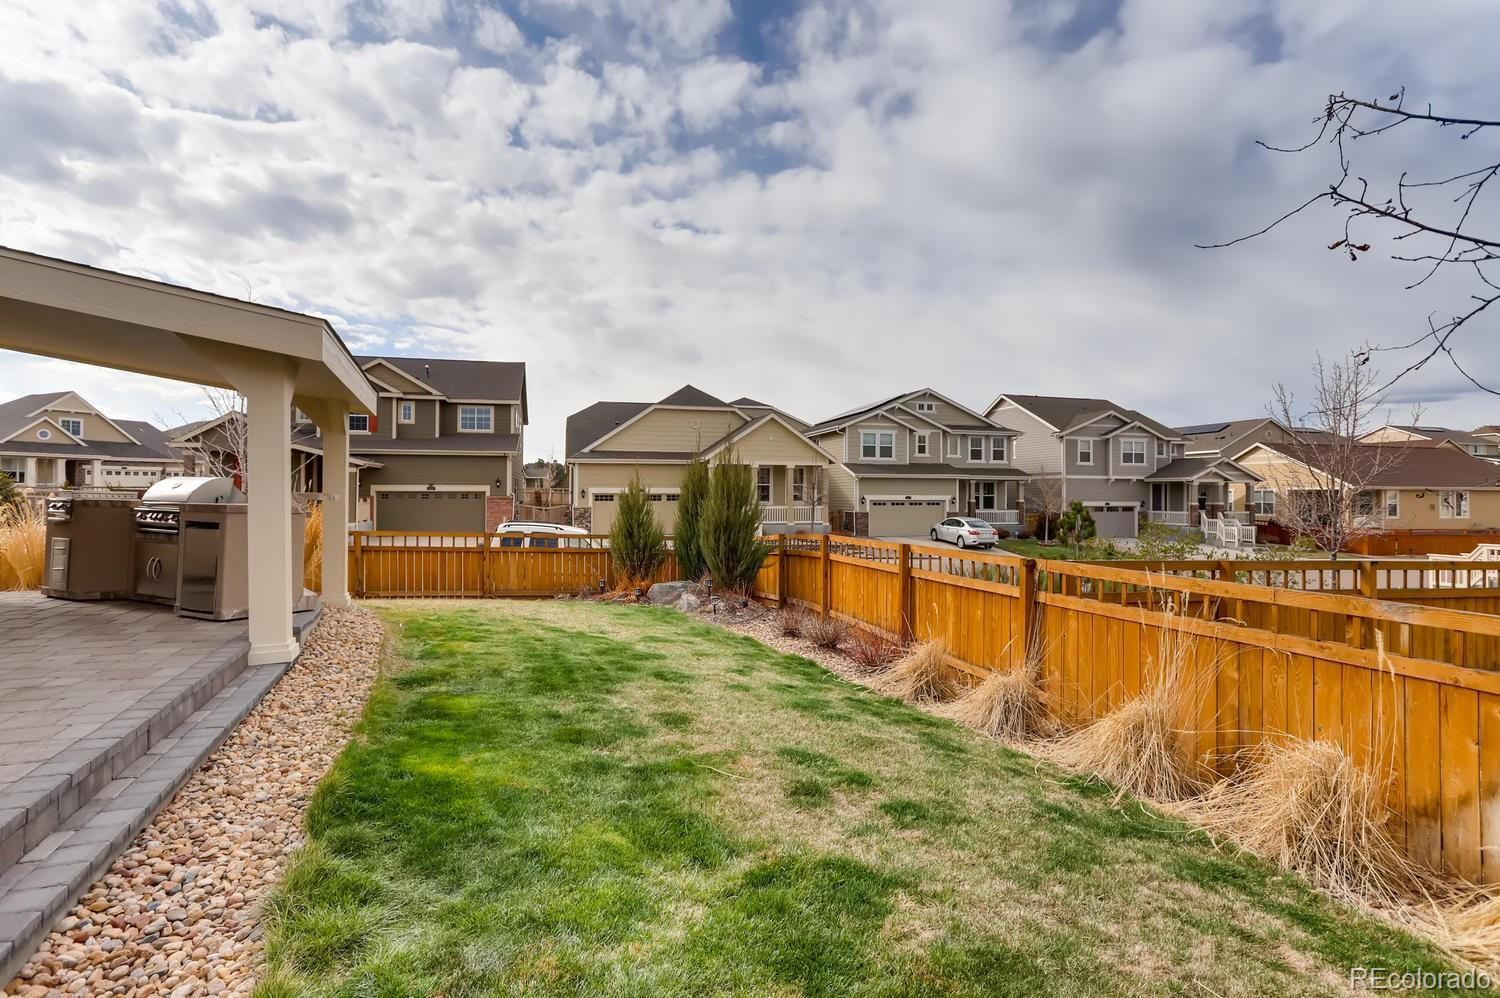 MLS# 3615416 - 2360 Leafdale Circle, Castle Rock, CO 80109